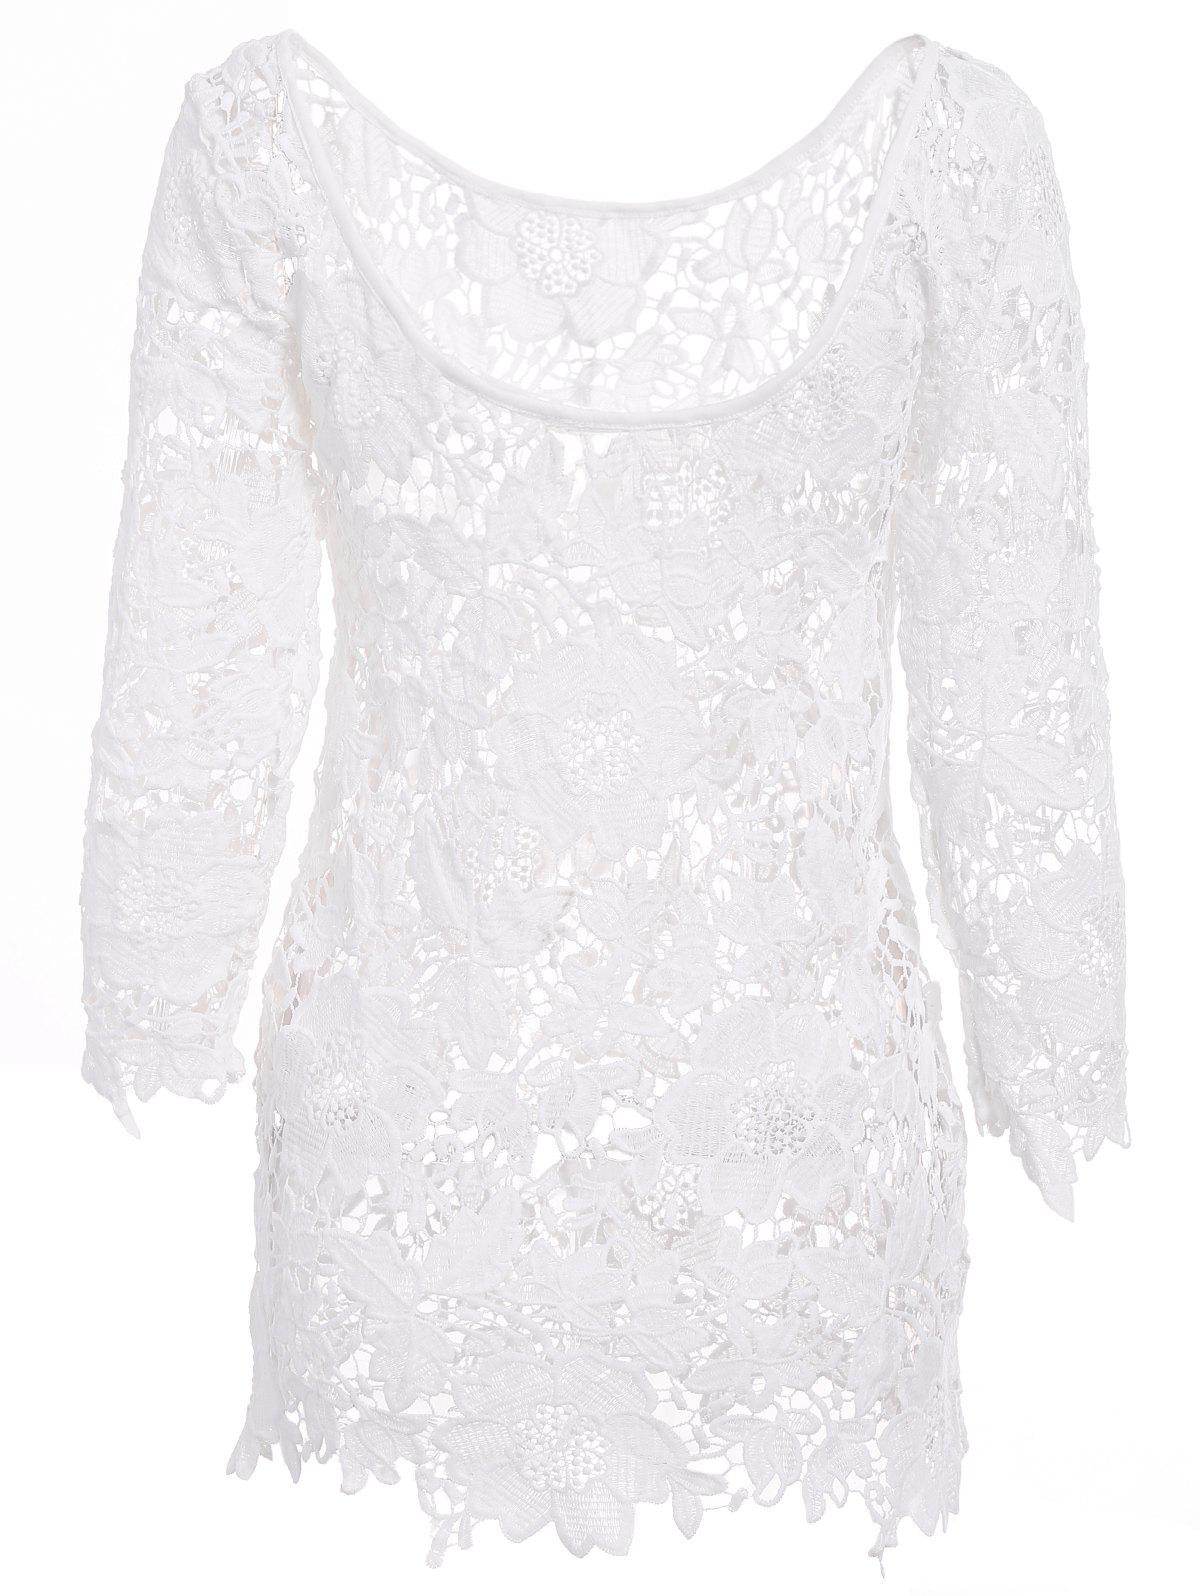 Sexy Round Neck 3/4 Sleeve Crochet Cut Out Women's Cover Up - WHITE L